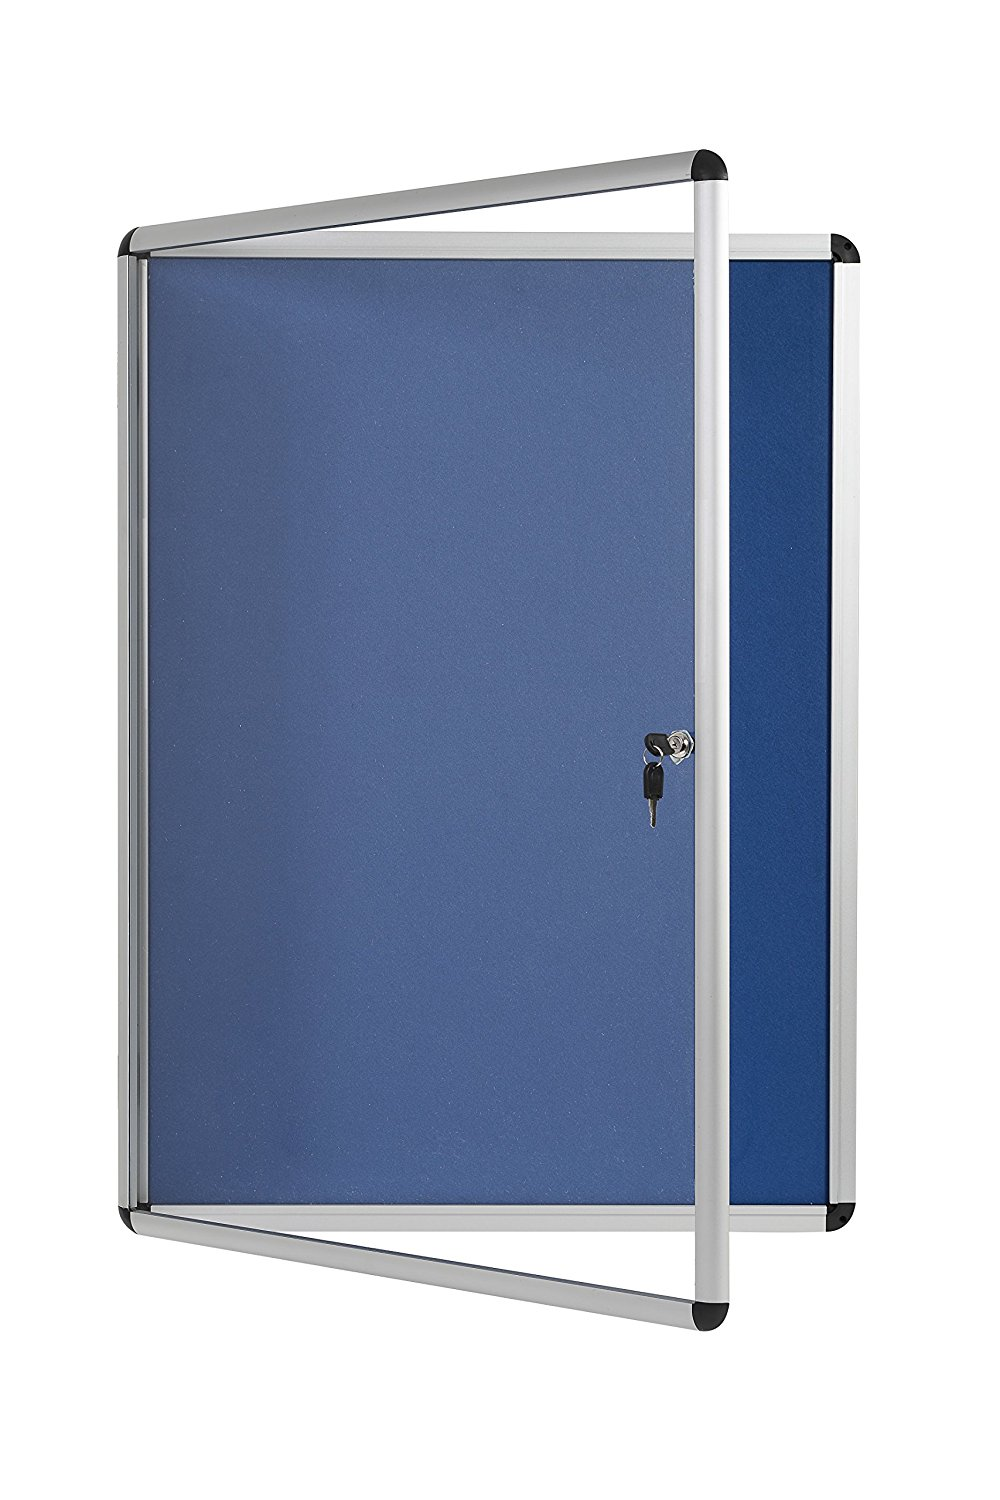 Foamboard Bi-Office Blue Felt Lockable Noticeboard 6xA4 720x670mm